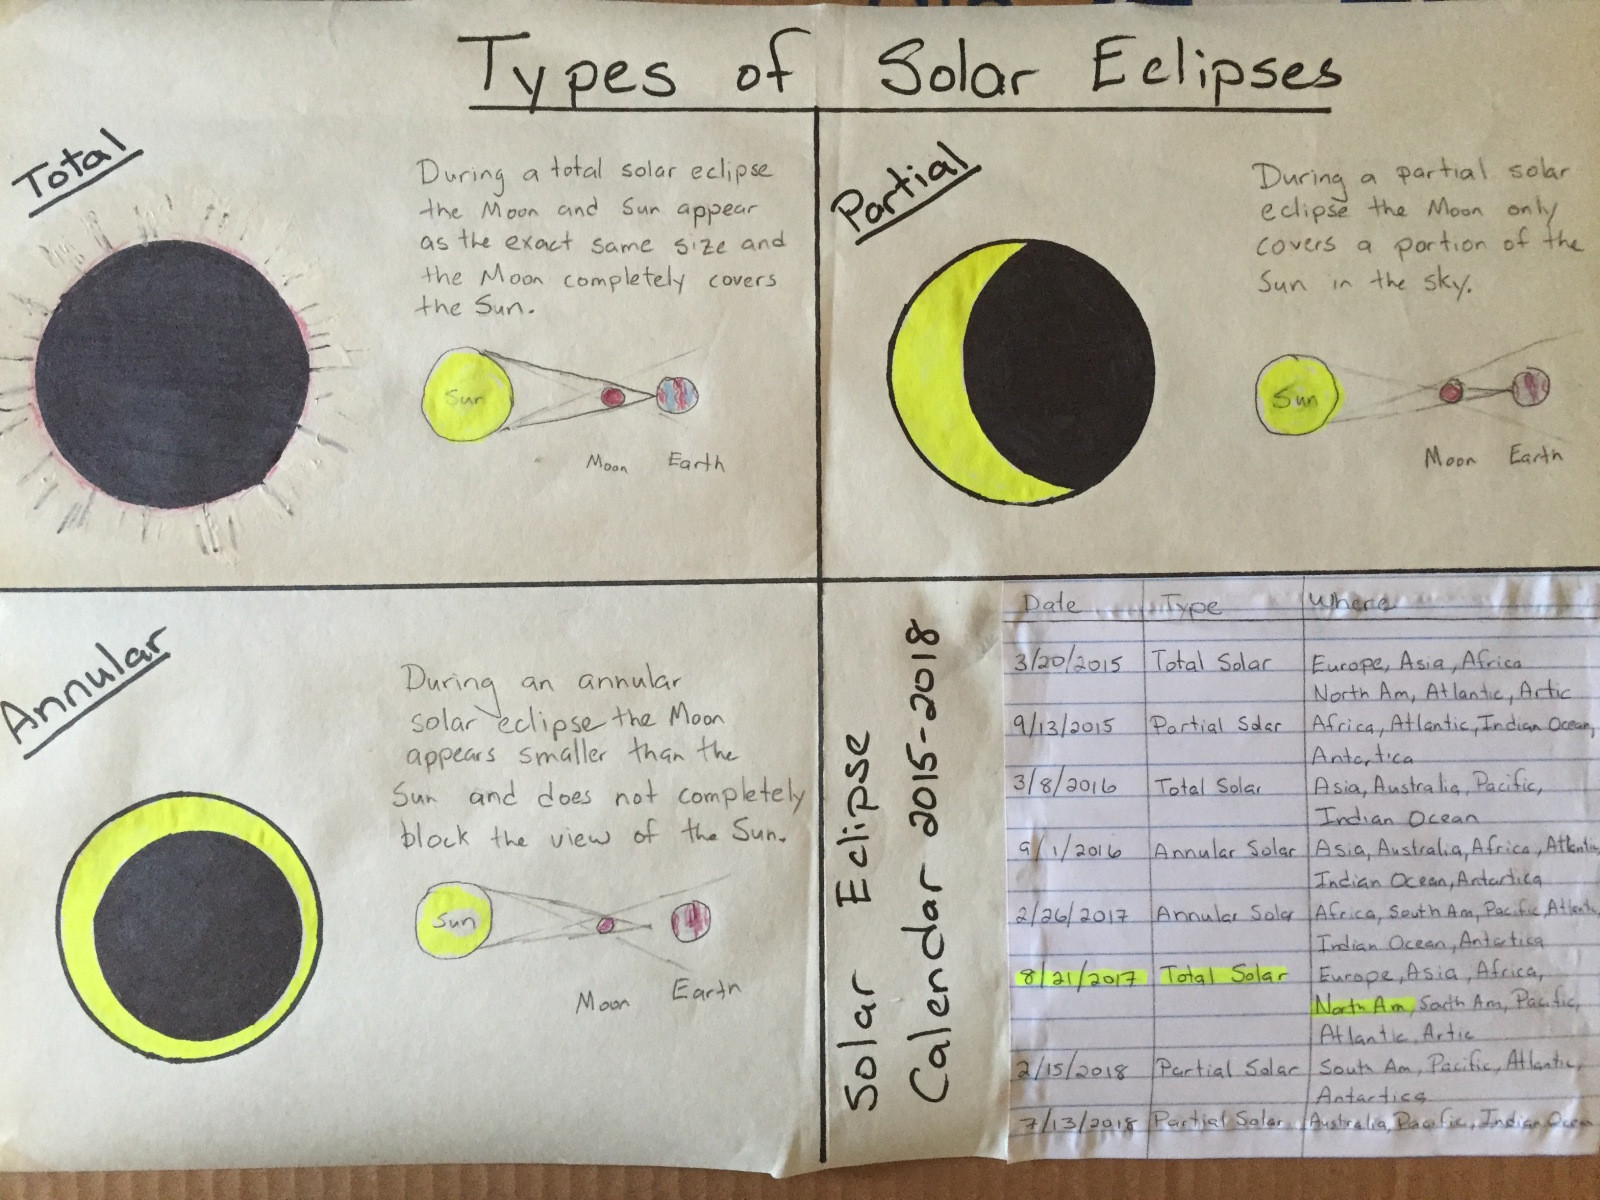 Solar Eclipse Worksheets Middle School Eighth Grade Lesson solar Eclipse Lesson for 8 21 2017